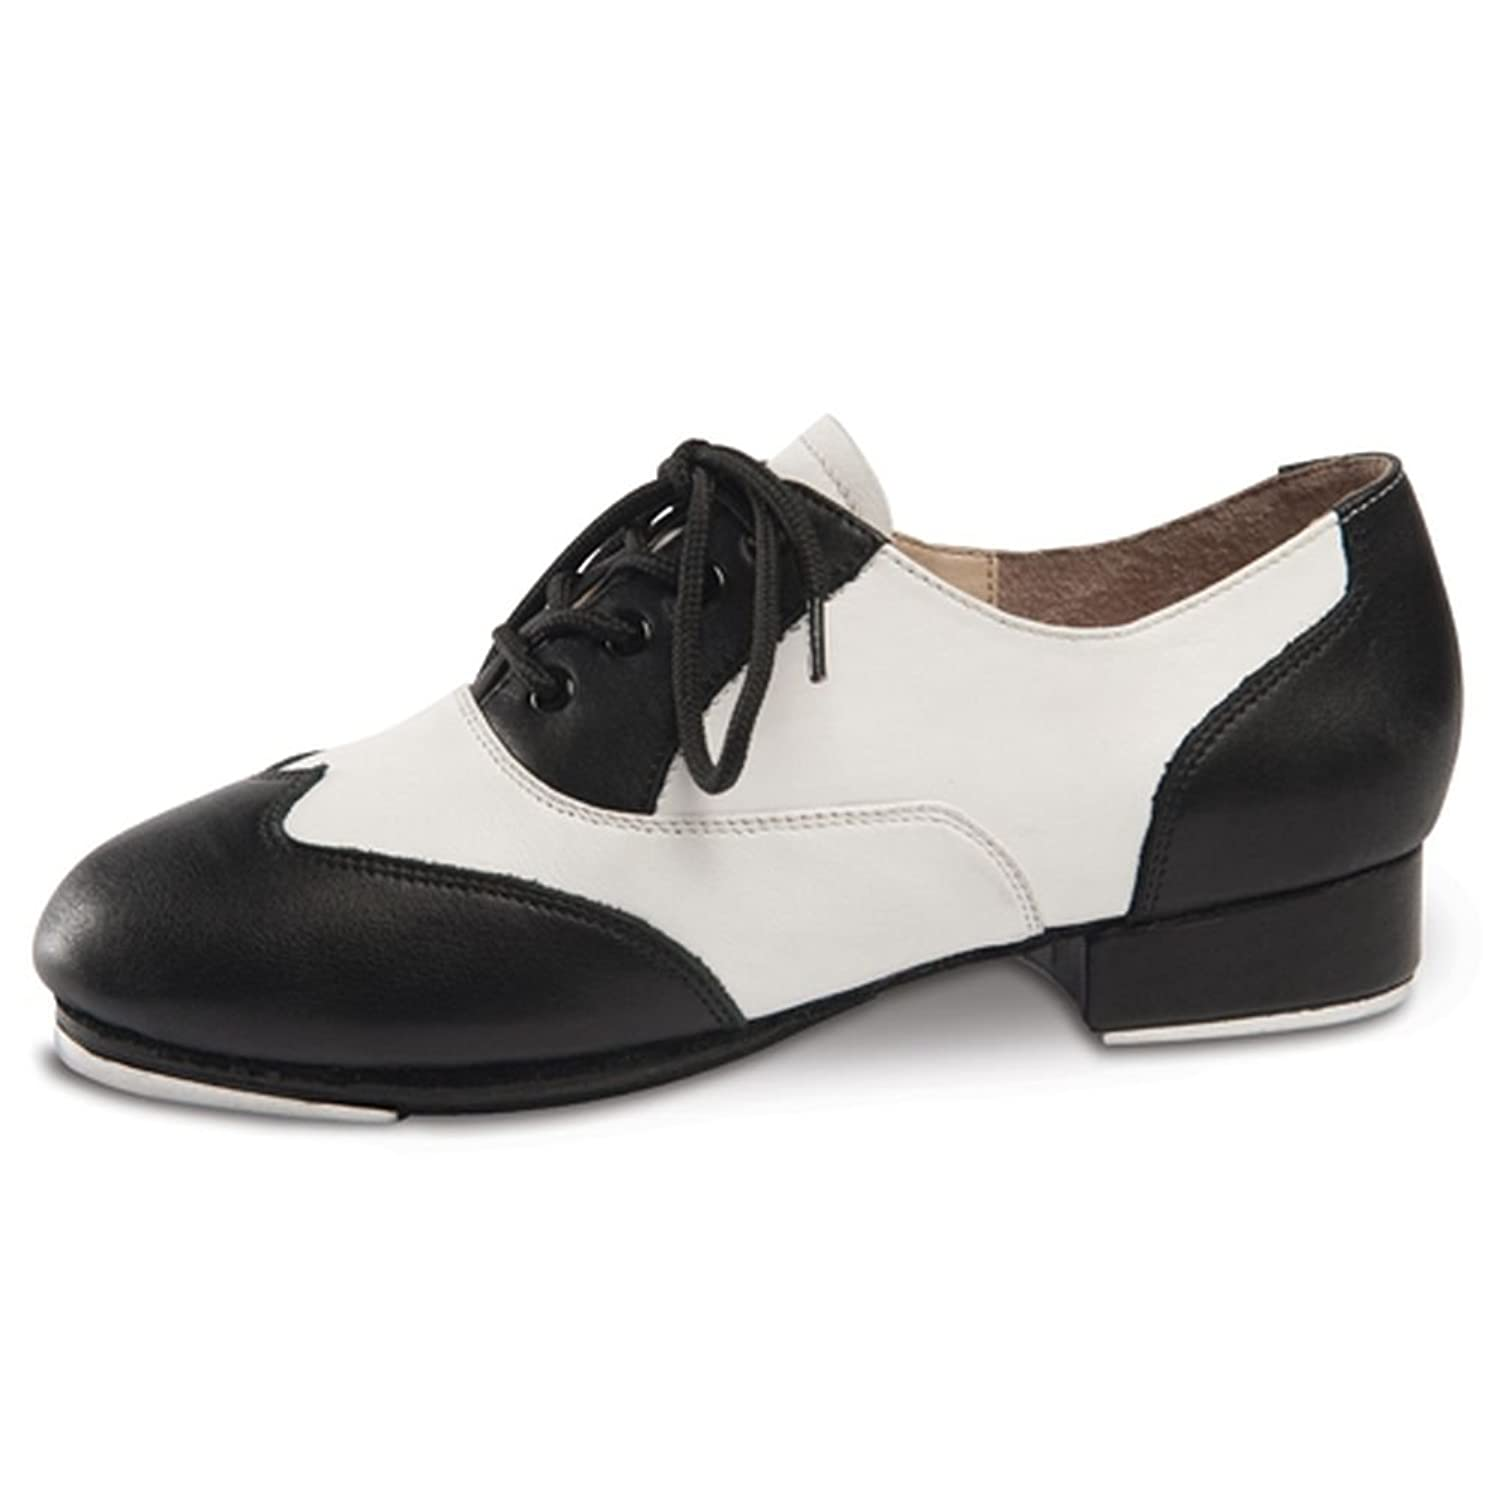 Swing Dance Shoes- Vintage, Lindy Hop, Tap, Ballroom Danshuz Womens Black White Saddle Style Tap Dance Shoes Size 3-11 $119.95 AT vintagedancer.com